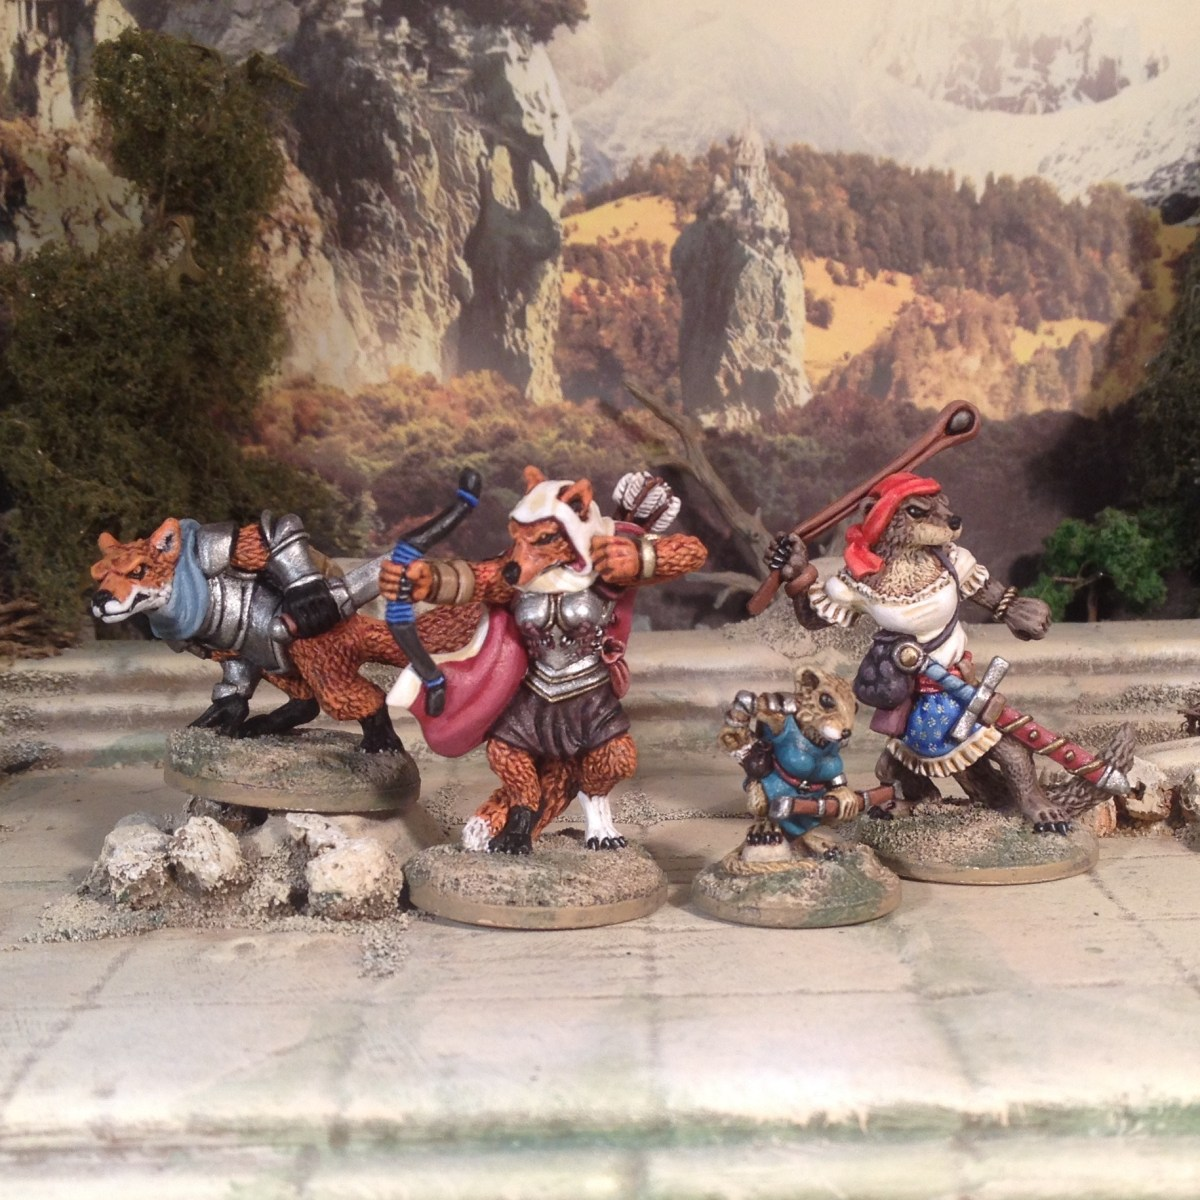 More Anthropomorphic Woodland Animals from Oathsworn and new 'Flash' Kickstarter